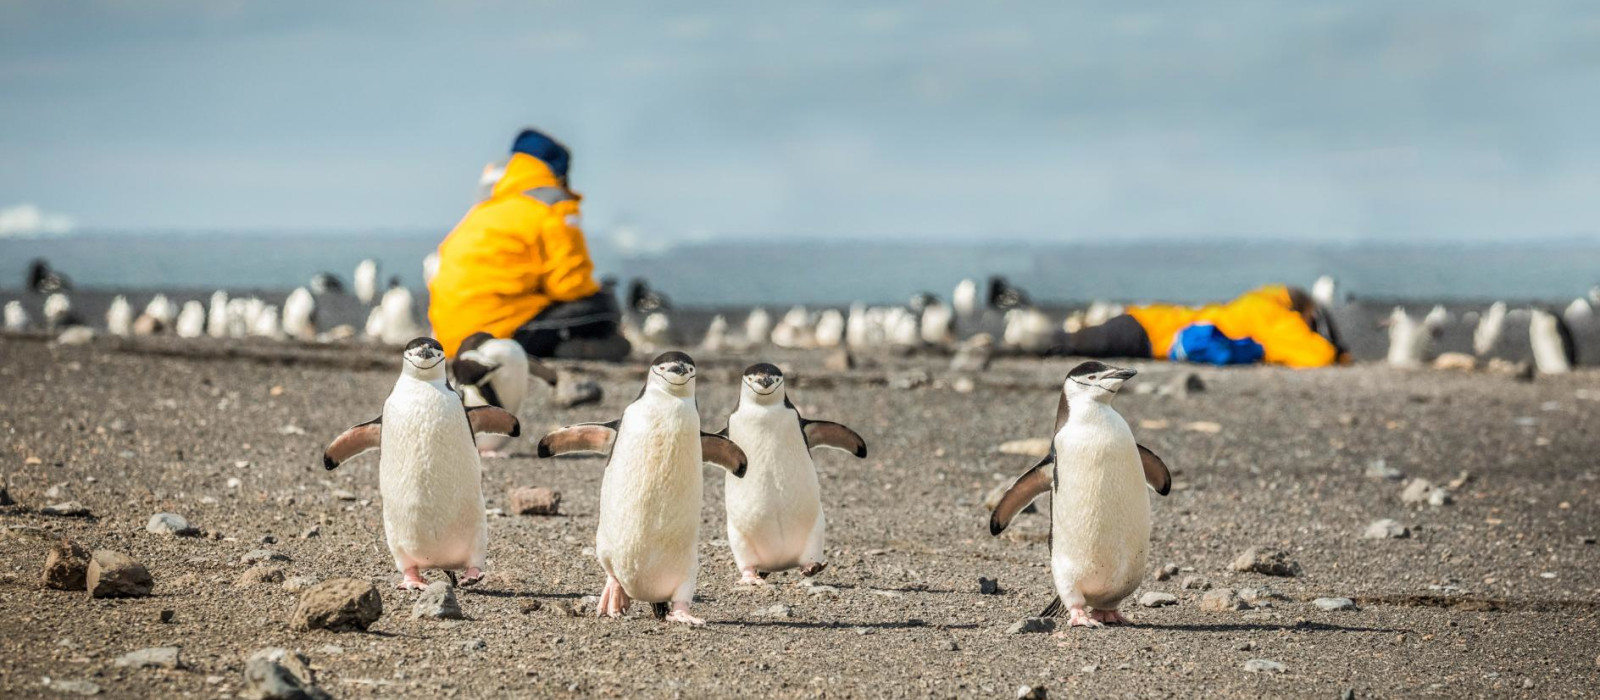 Seventh Continent Cruise with Cape Horn and Diego Ramirez Tour Trip 1